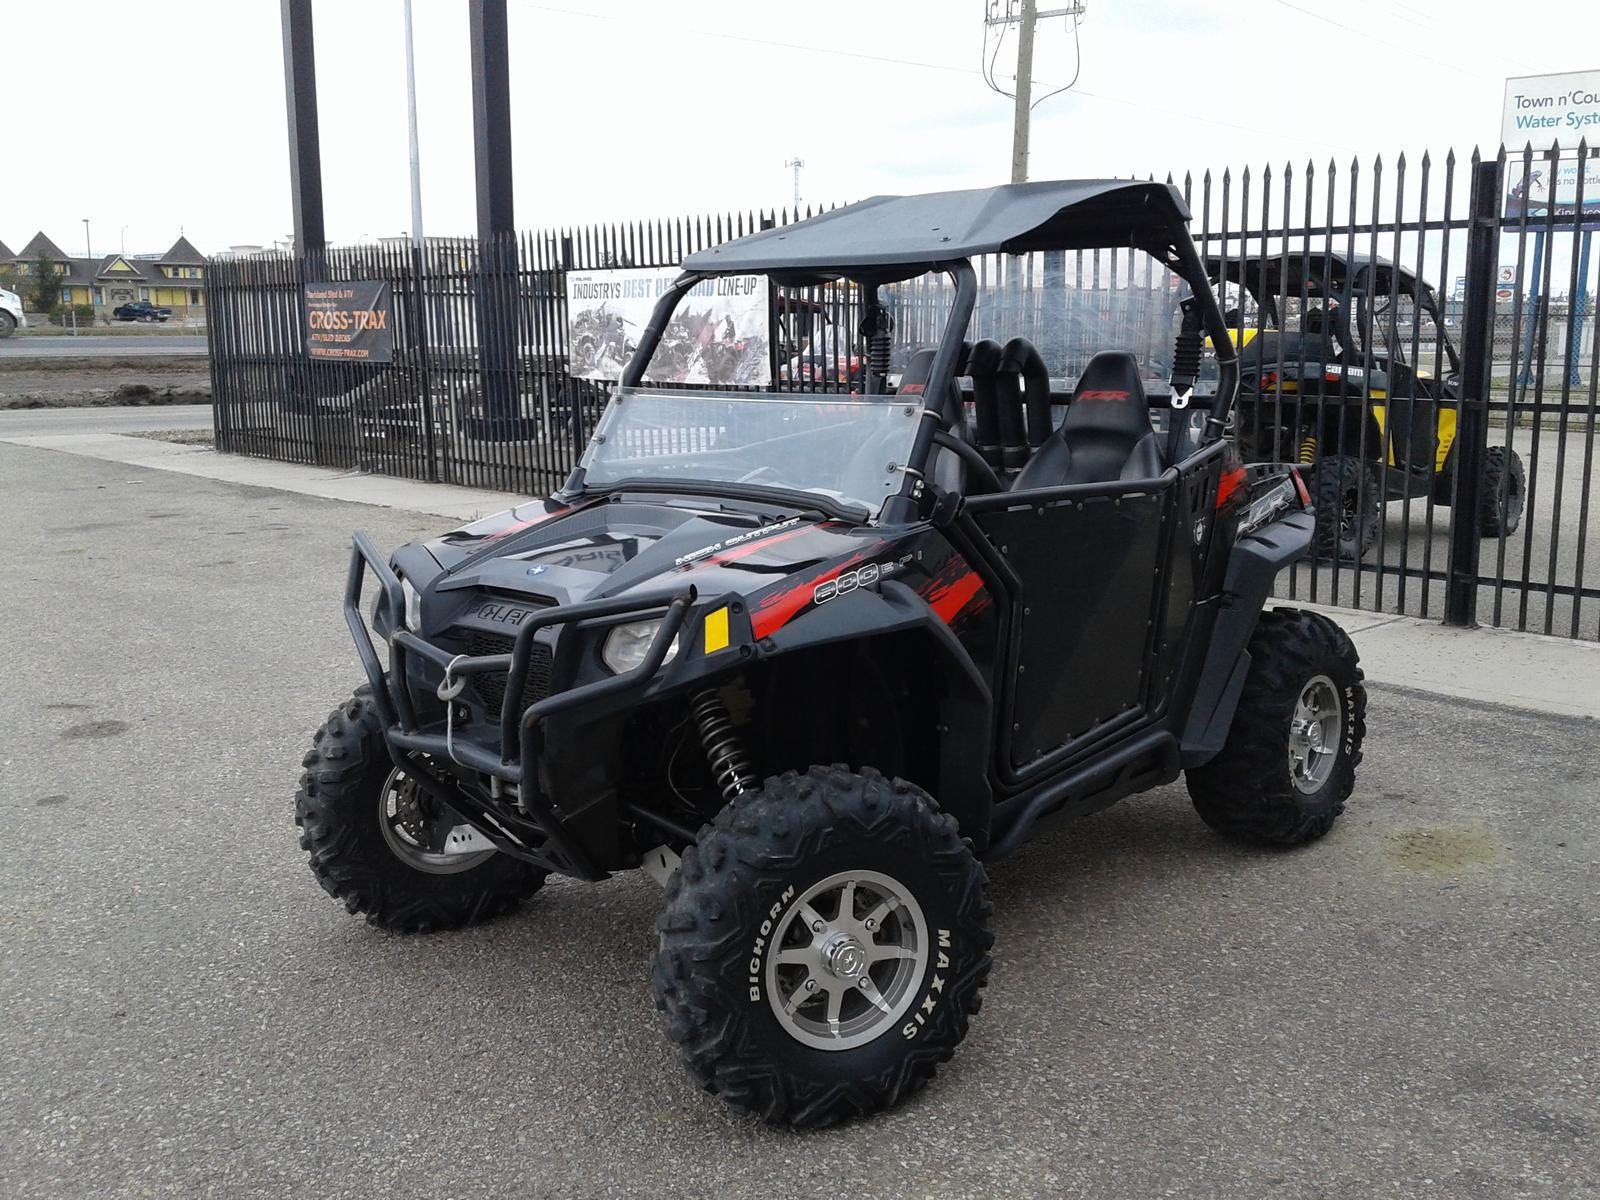 hight resolution of 2011 rzr s 800 black carbon fiber le low km in good shape polaris industries 2011 rzr s 800